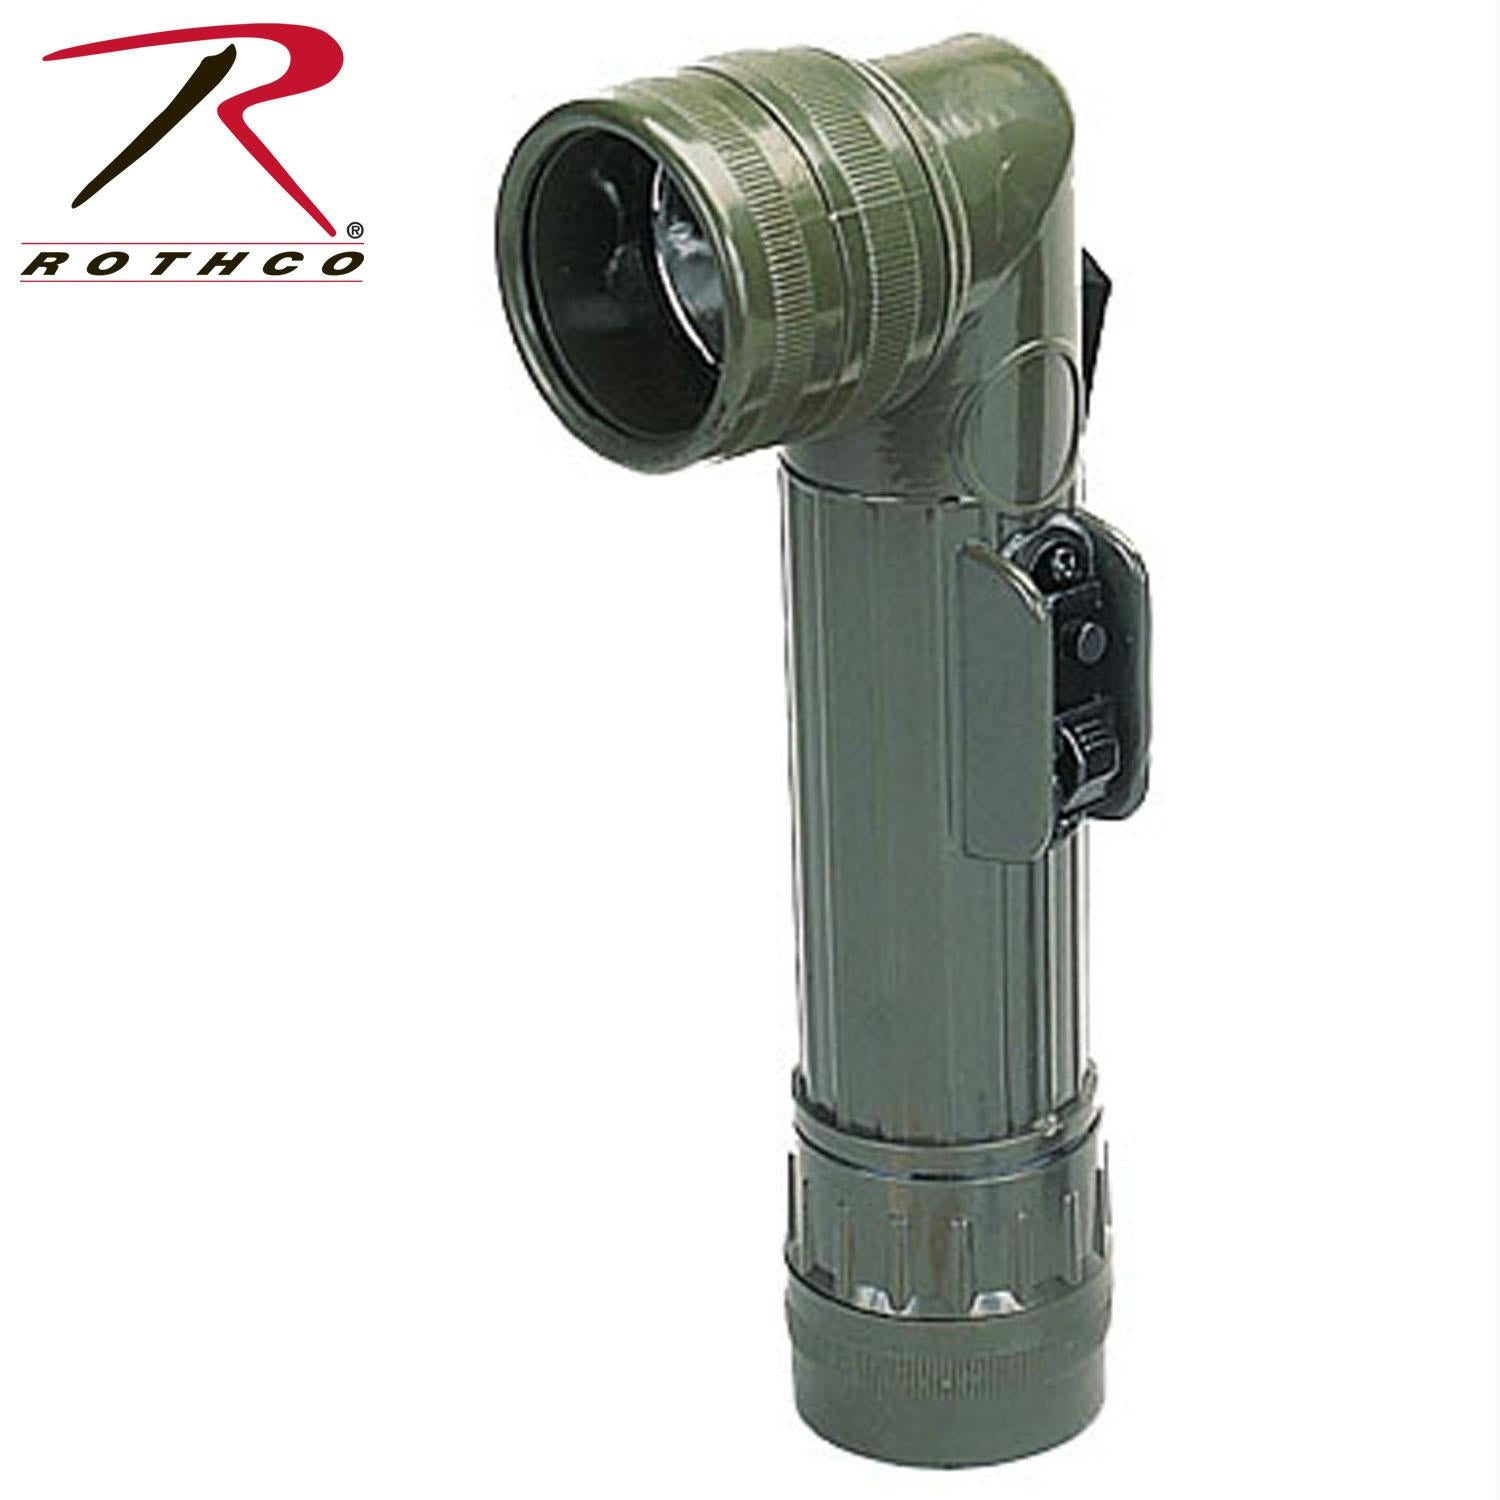 Rothco G.I. Type D-Cell Flashlights - Olive Drab